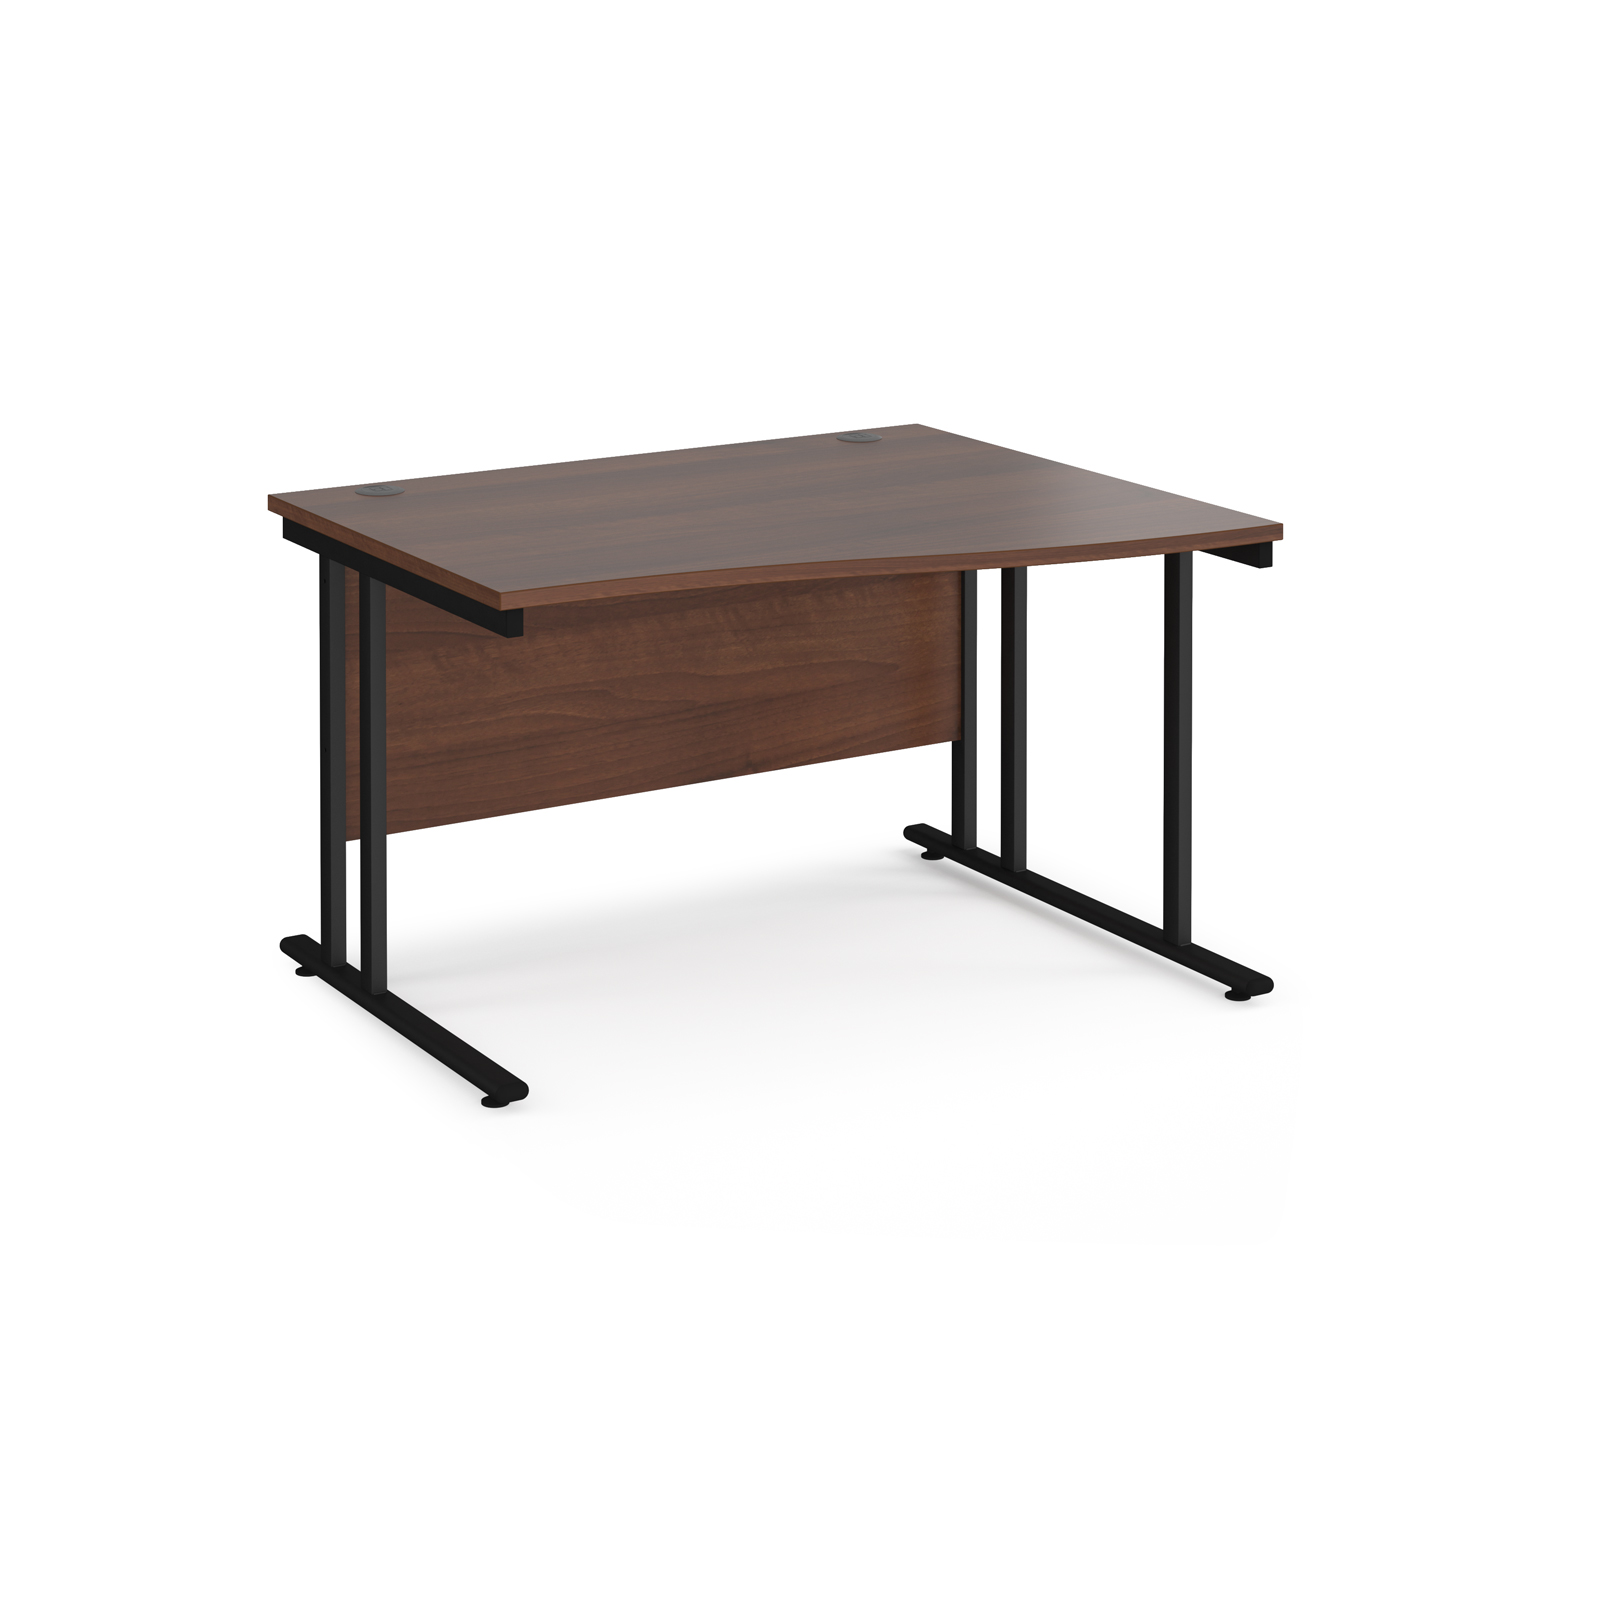 Right Handed Maestro 25 right hand wave desk 1200mm wide - black cantilever leg frame, walnut top